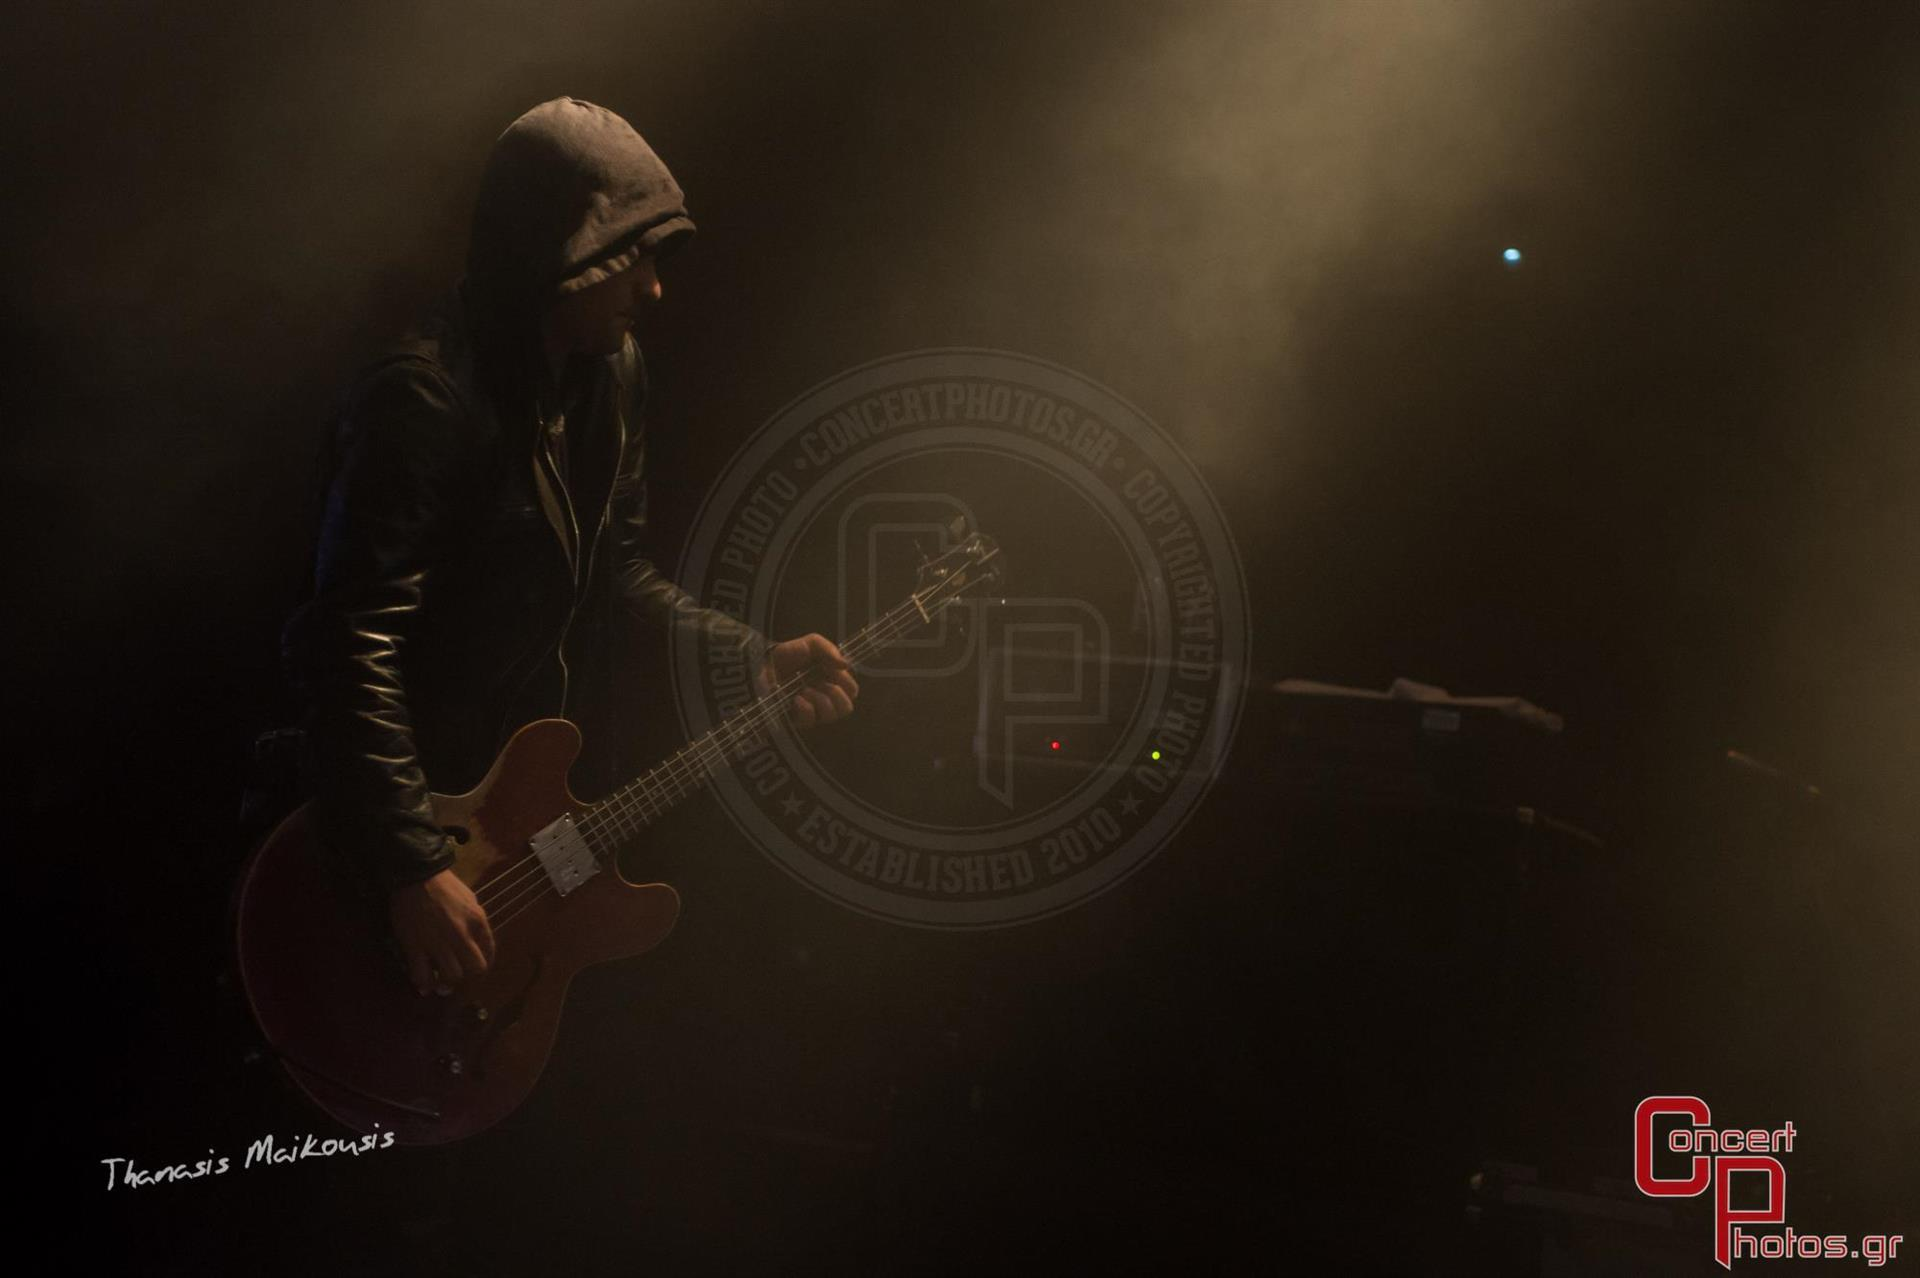 Black Rebel Motorcycle Club-Black Rebel Motorcyclw Club Acro photographer:  - _DSC8073